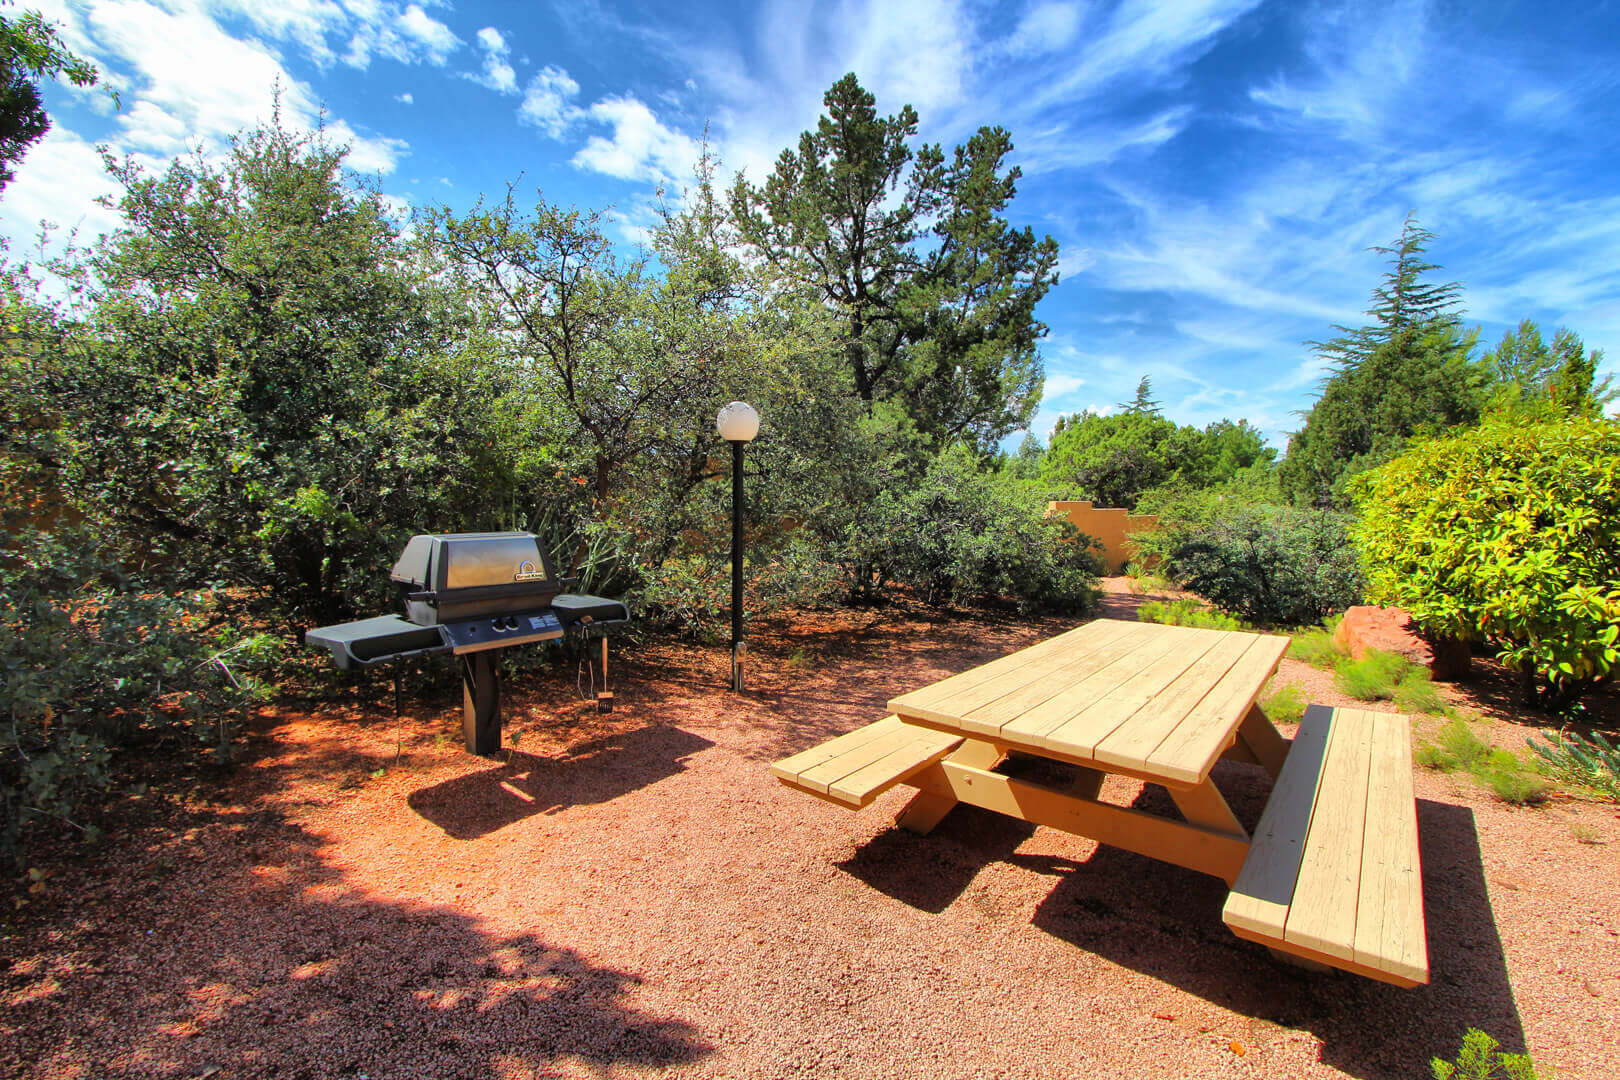 Villas Of Sedona Picnic Area